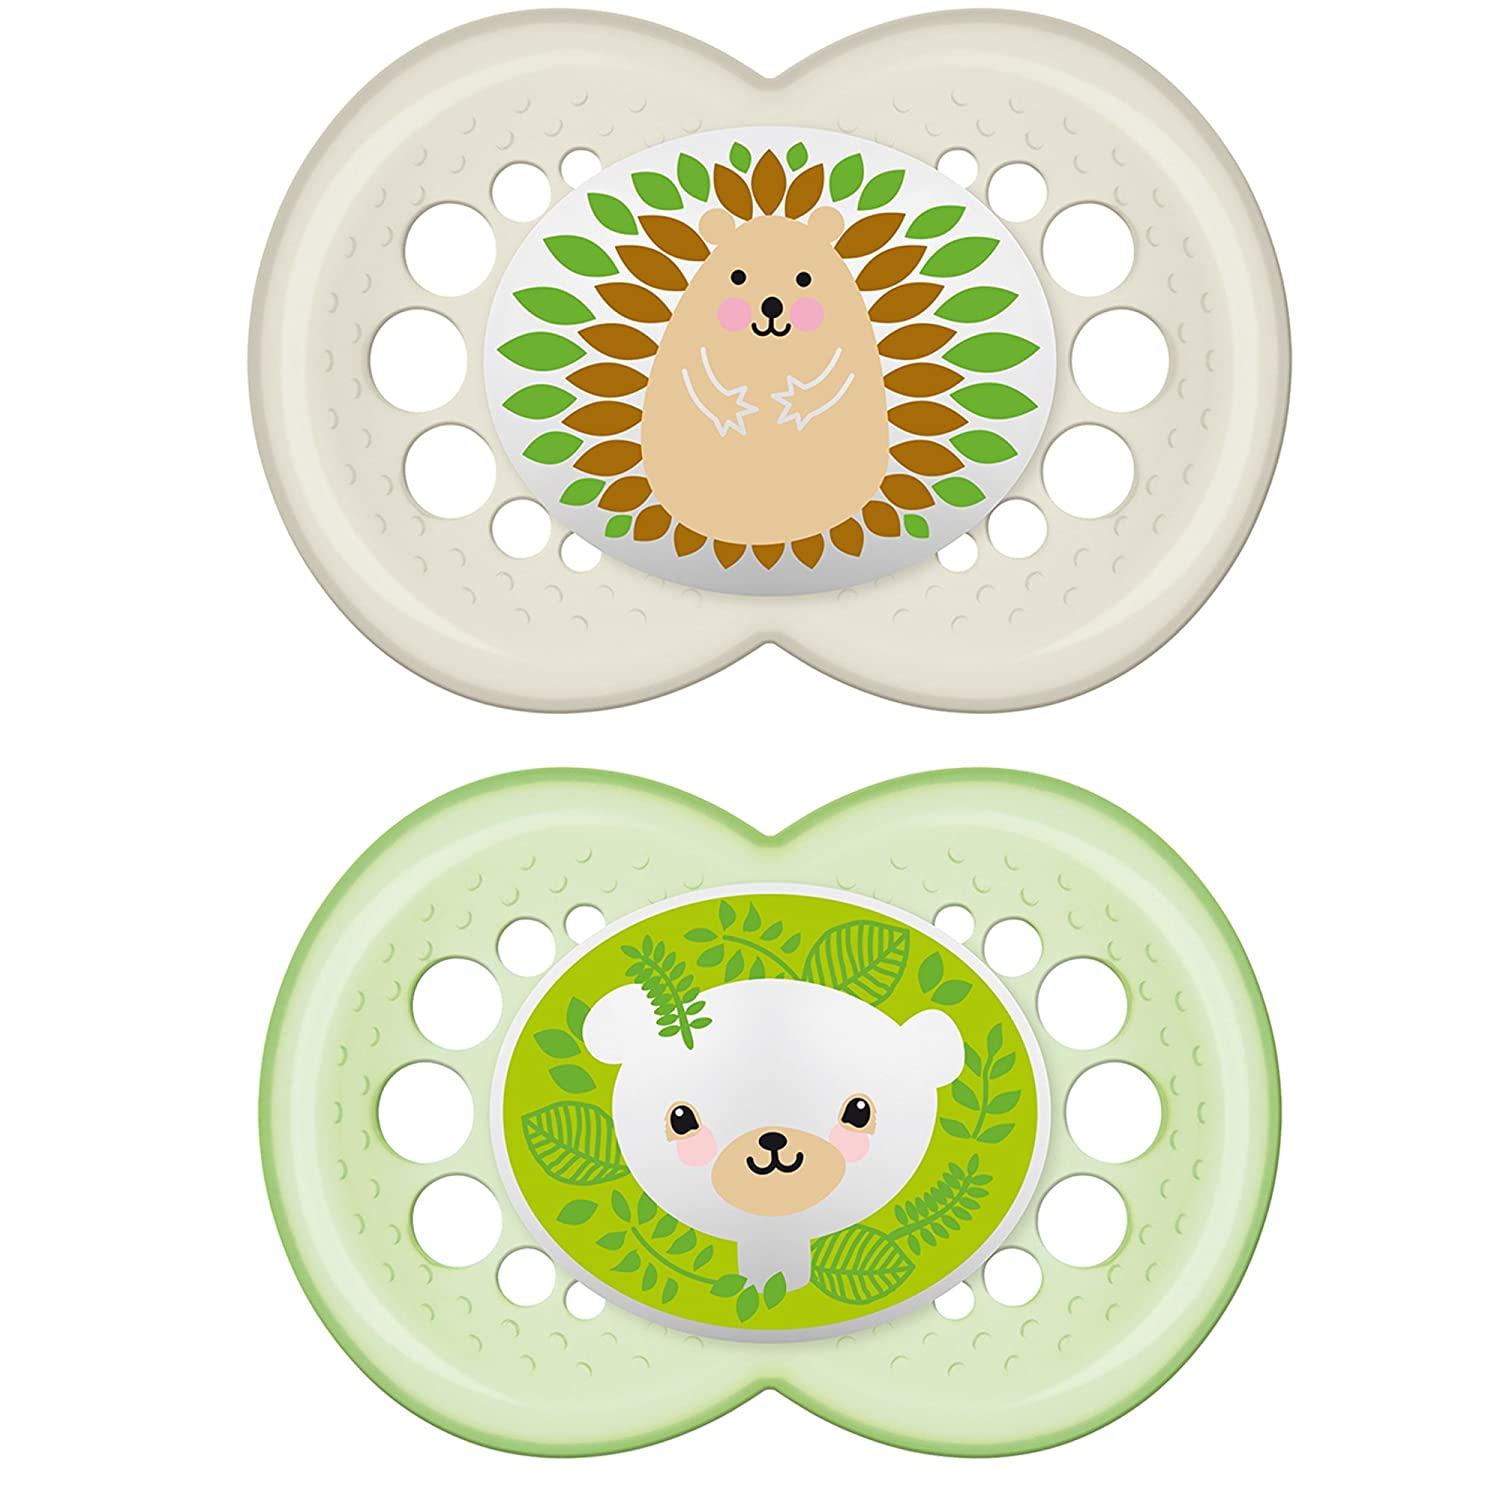 MAM Pacifiers, Baby Pacifier 6+ Months, Best Pacifier for Breastfed Babies, 'Animal' Design Collection, Unisex, 2-Count 3544-012-0-1